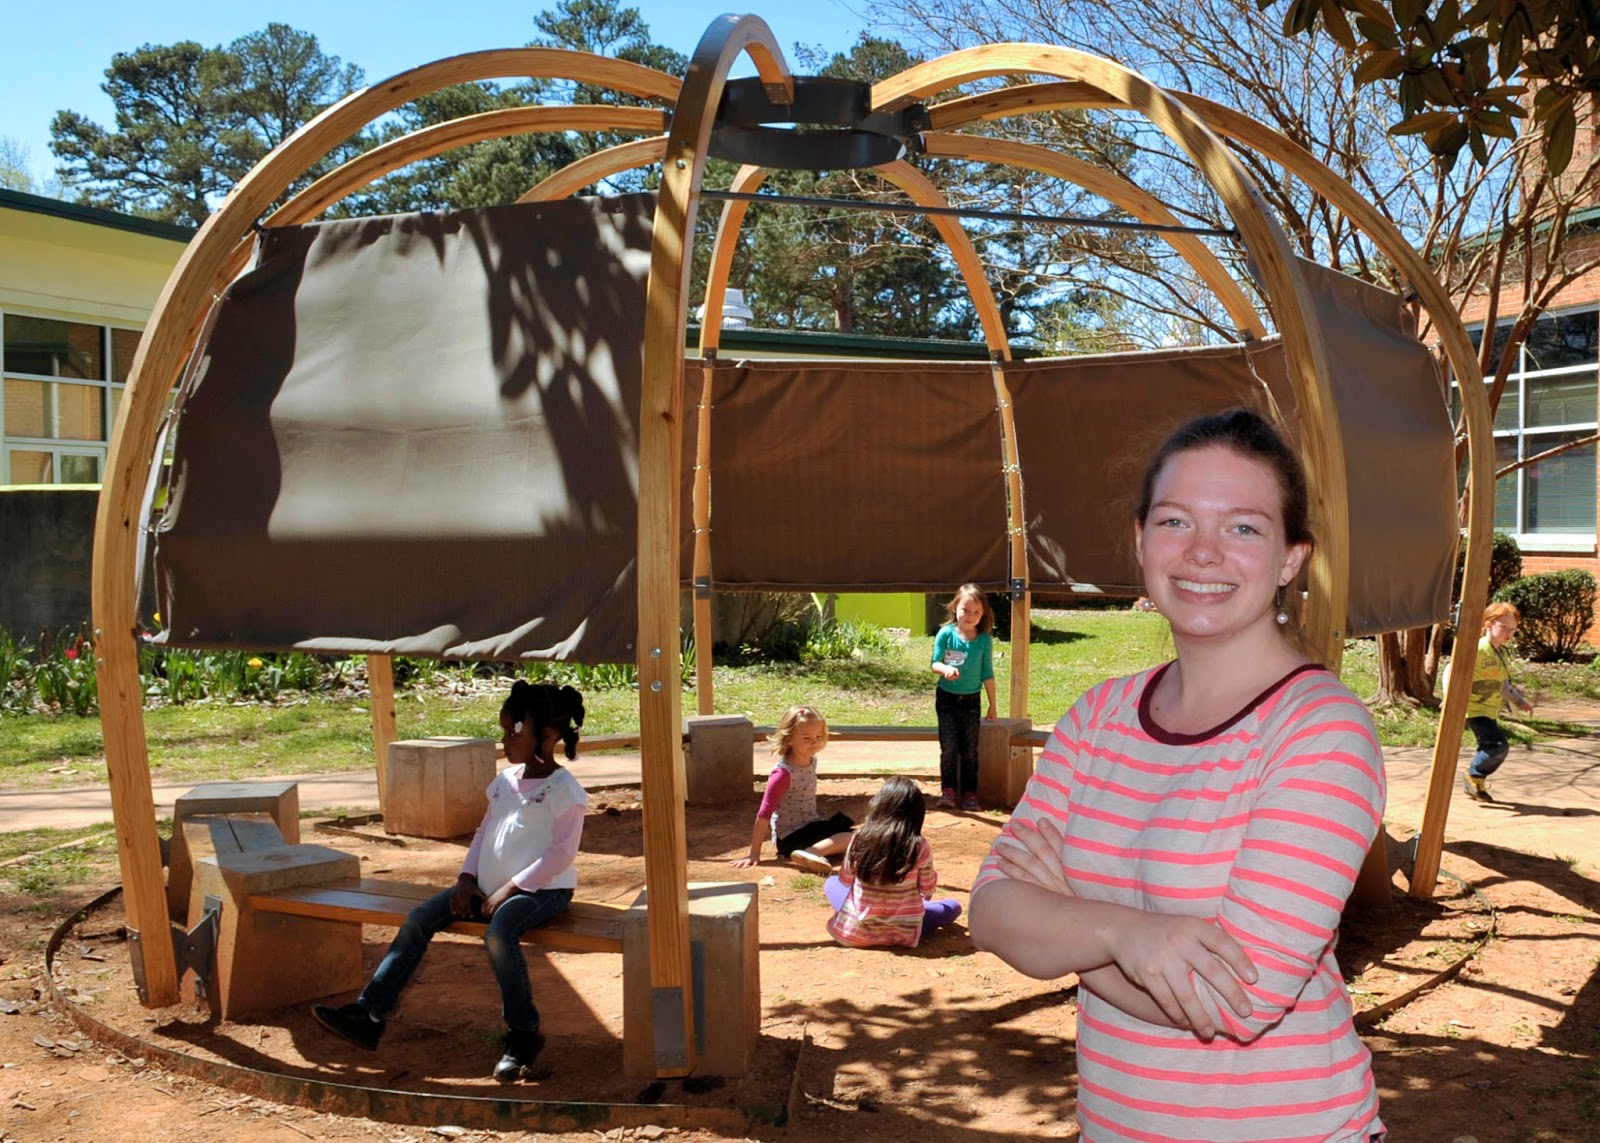 Unc Charlotte News Architect Students Build Outdoor Classroom